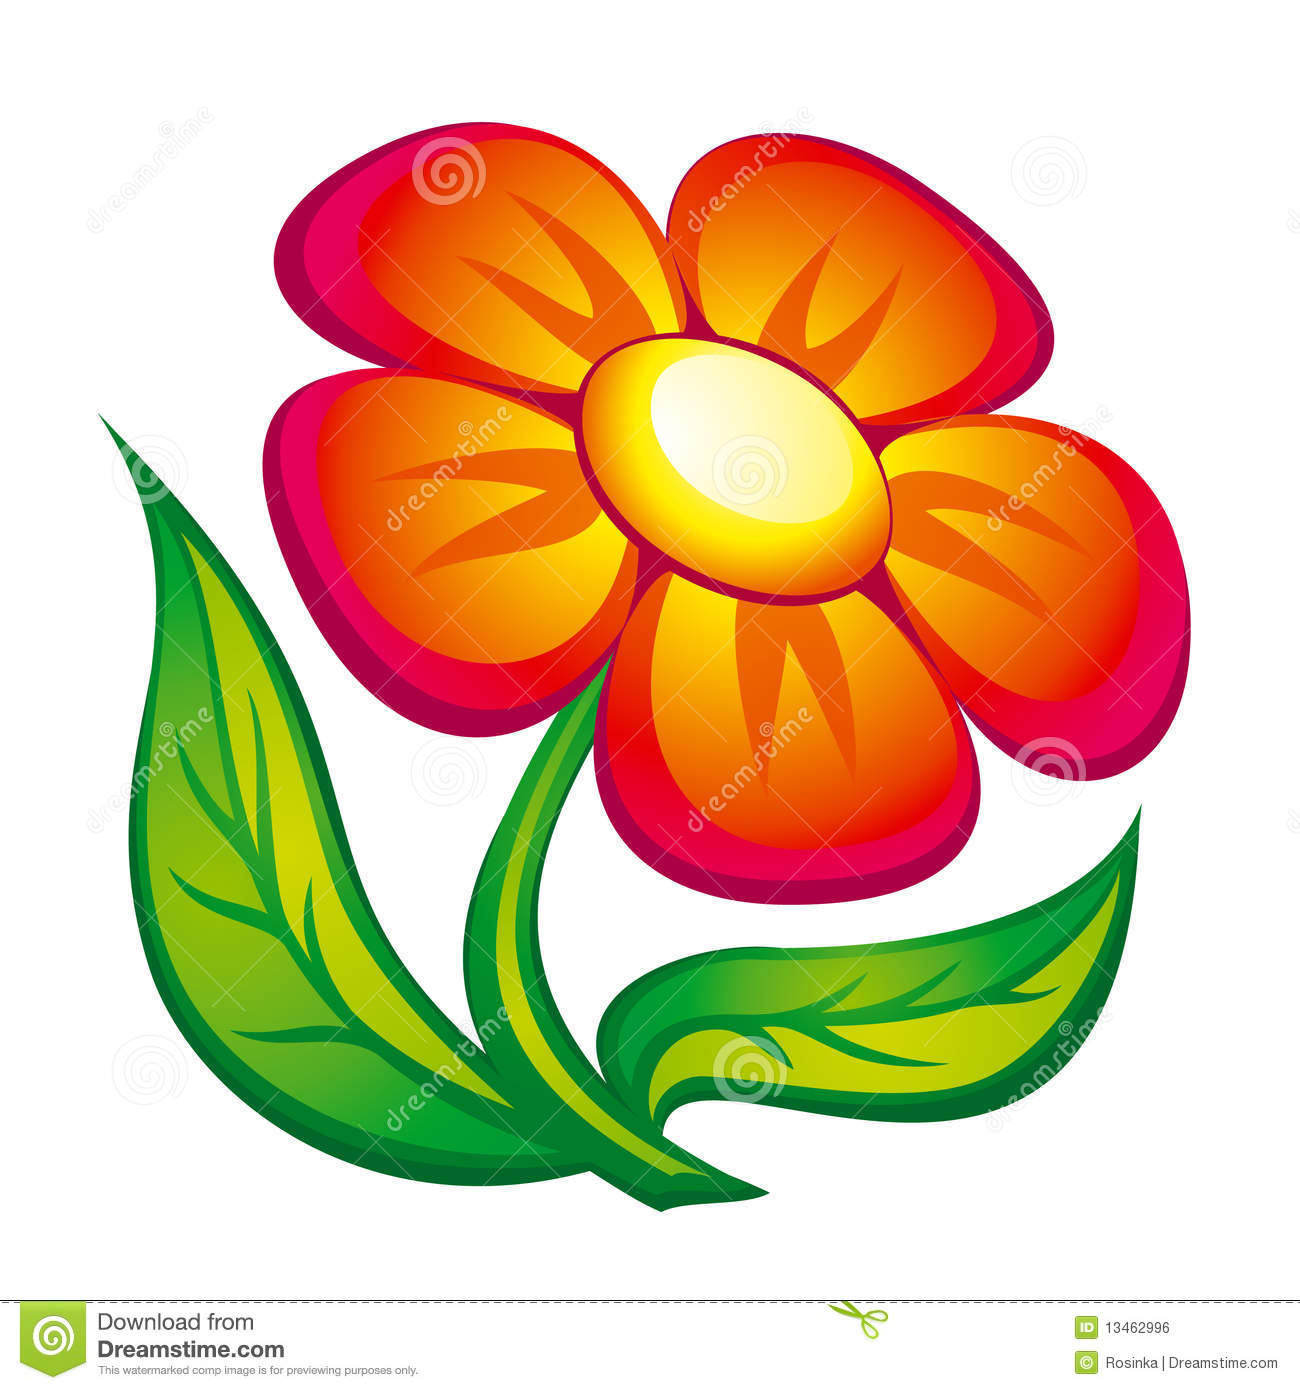 Flower Icon Royalty Free Stock Image - Image: 13462996